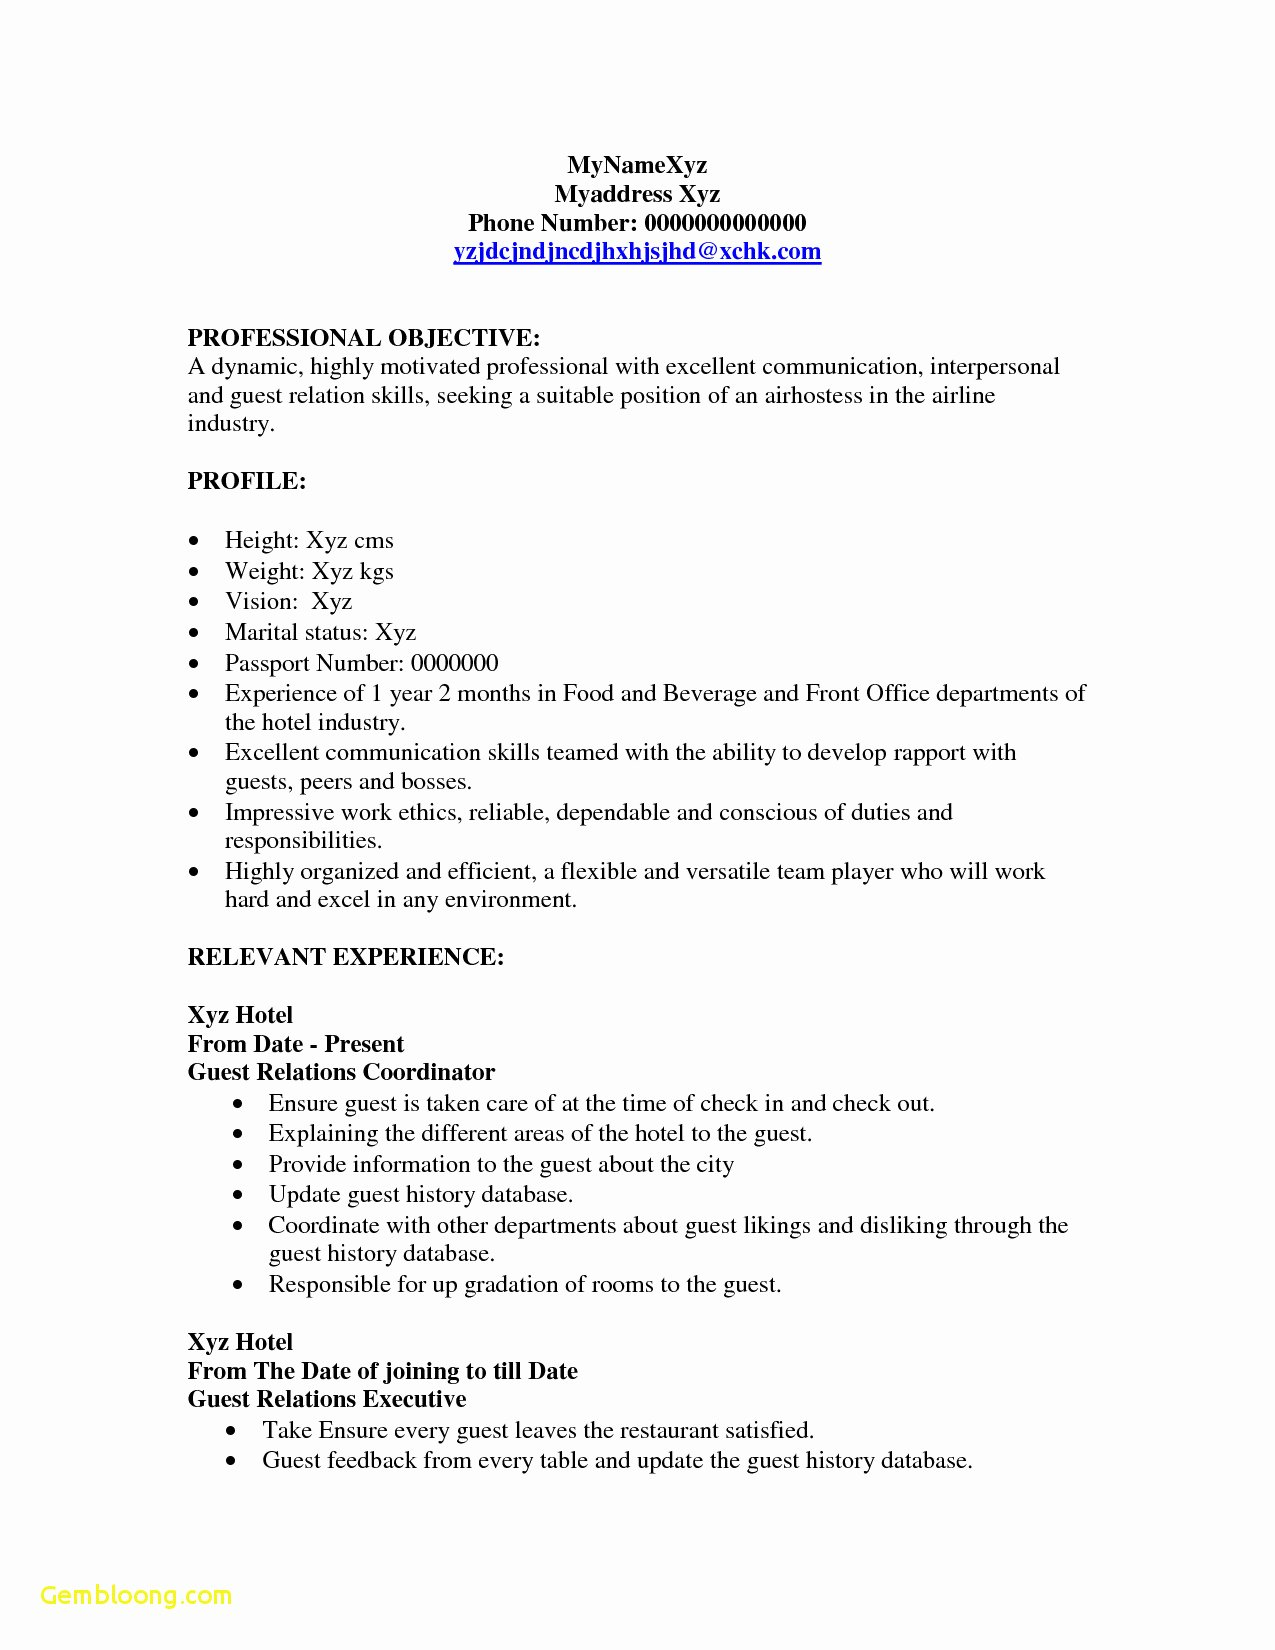 Hostess Job Description for Resume Elegant Hostess Job